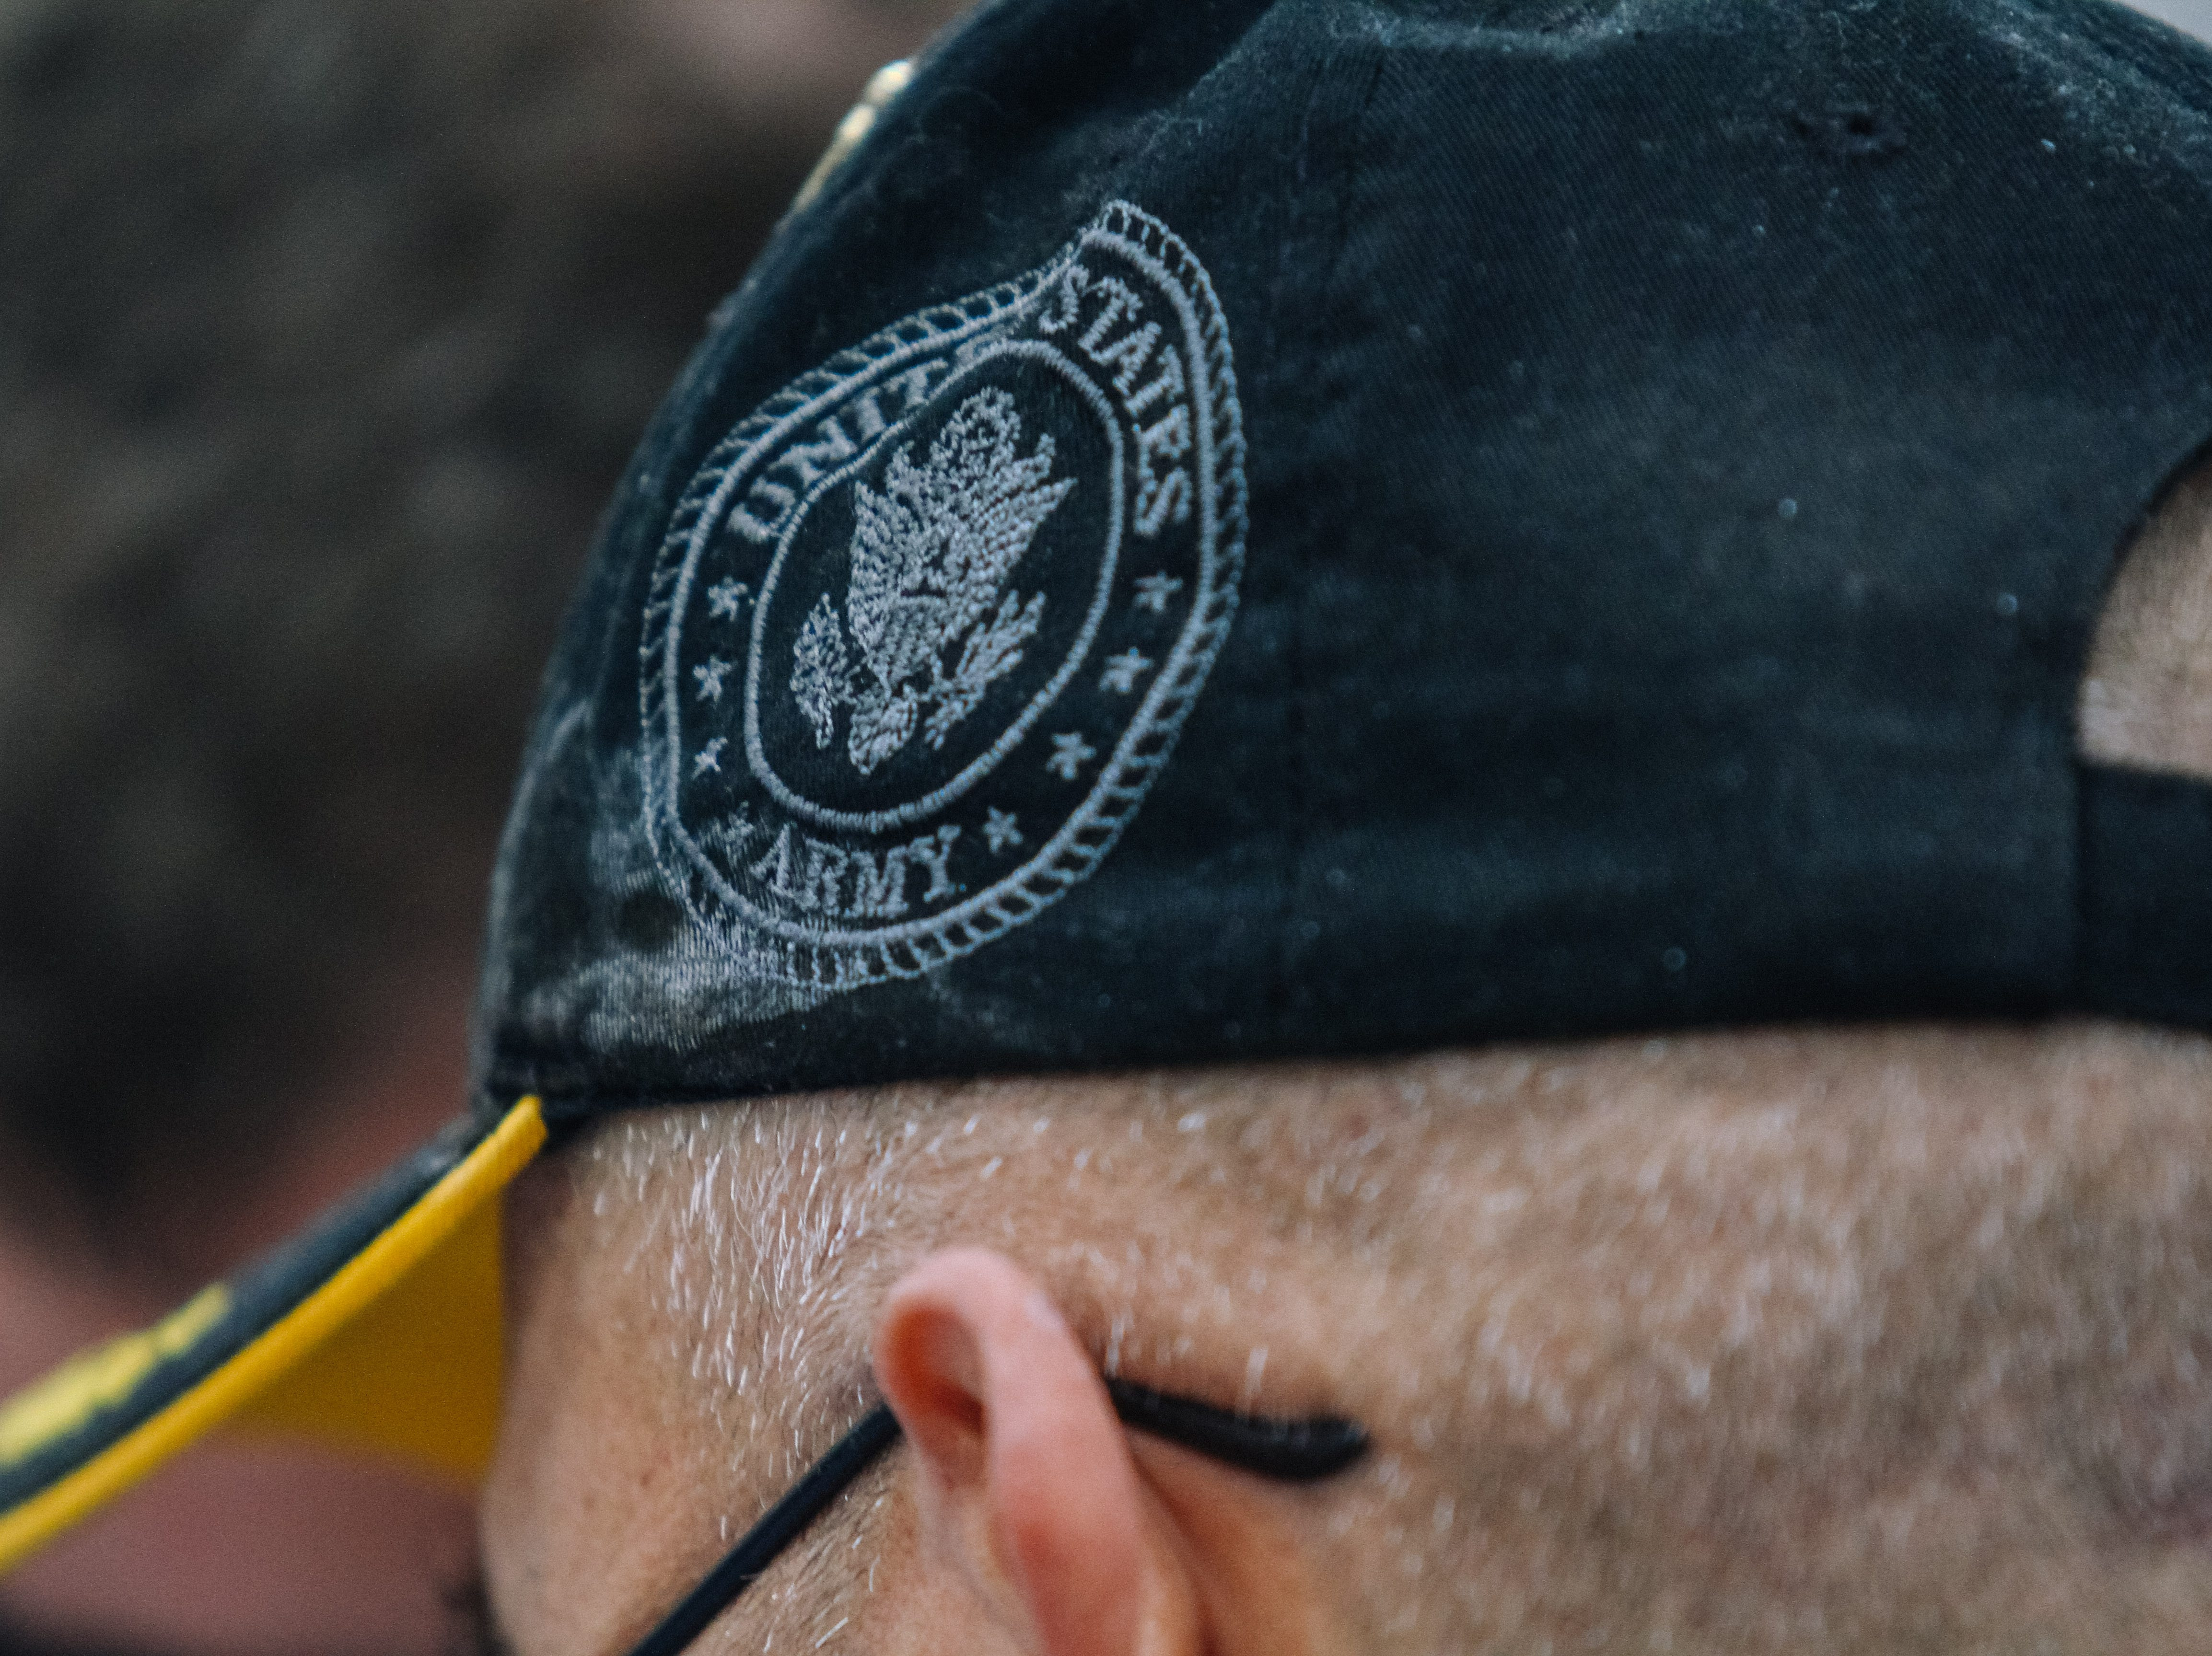 Army veteran Jack Rynes Jr. stands in line to get a new driver's license at the 2019 Veterans StandDown at the Arizona State Fairgrounds in Phoenix on  Jan. 25, 2019.